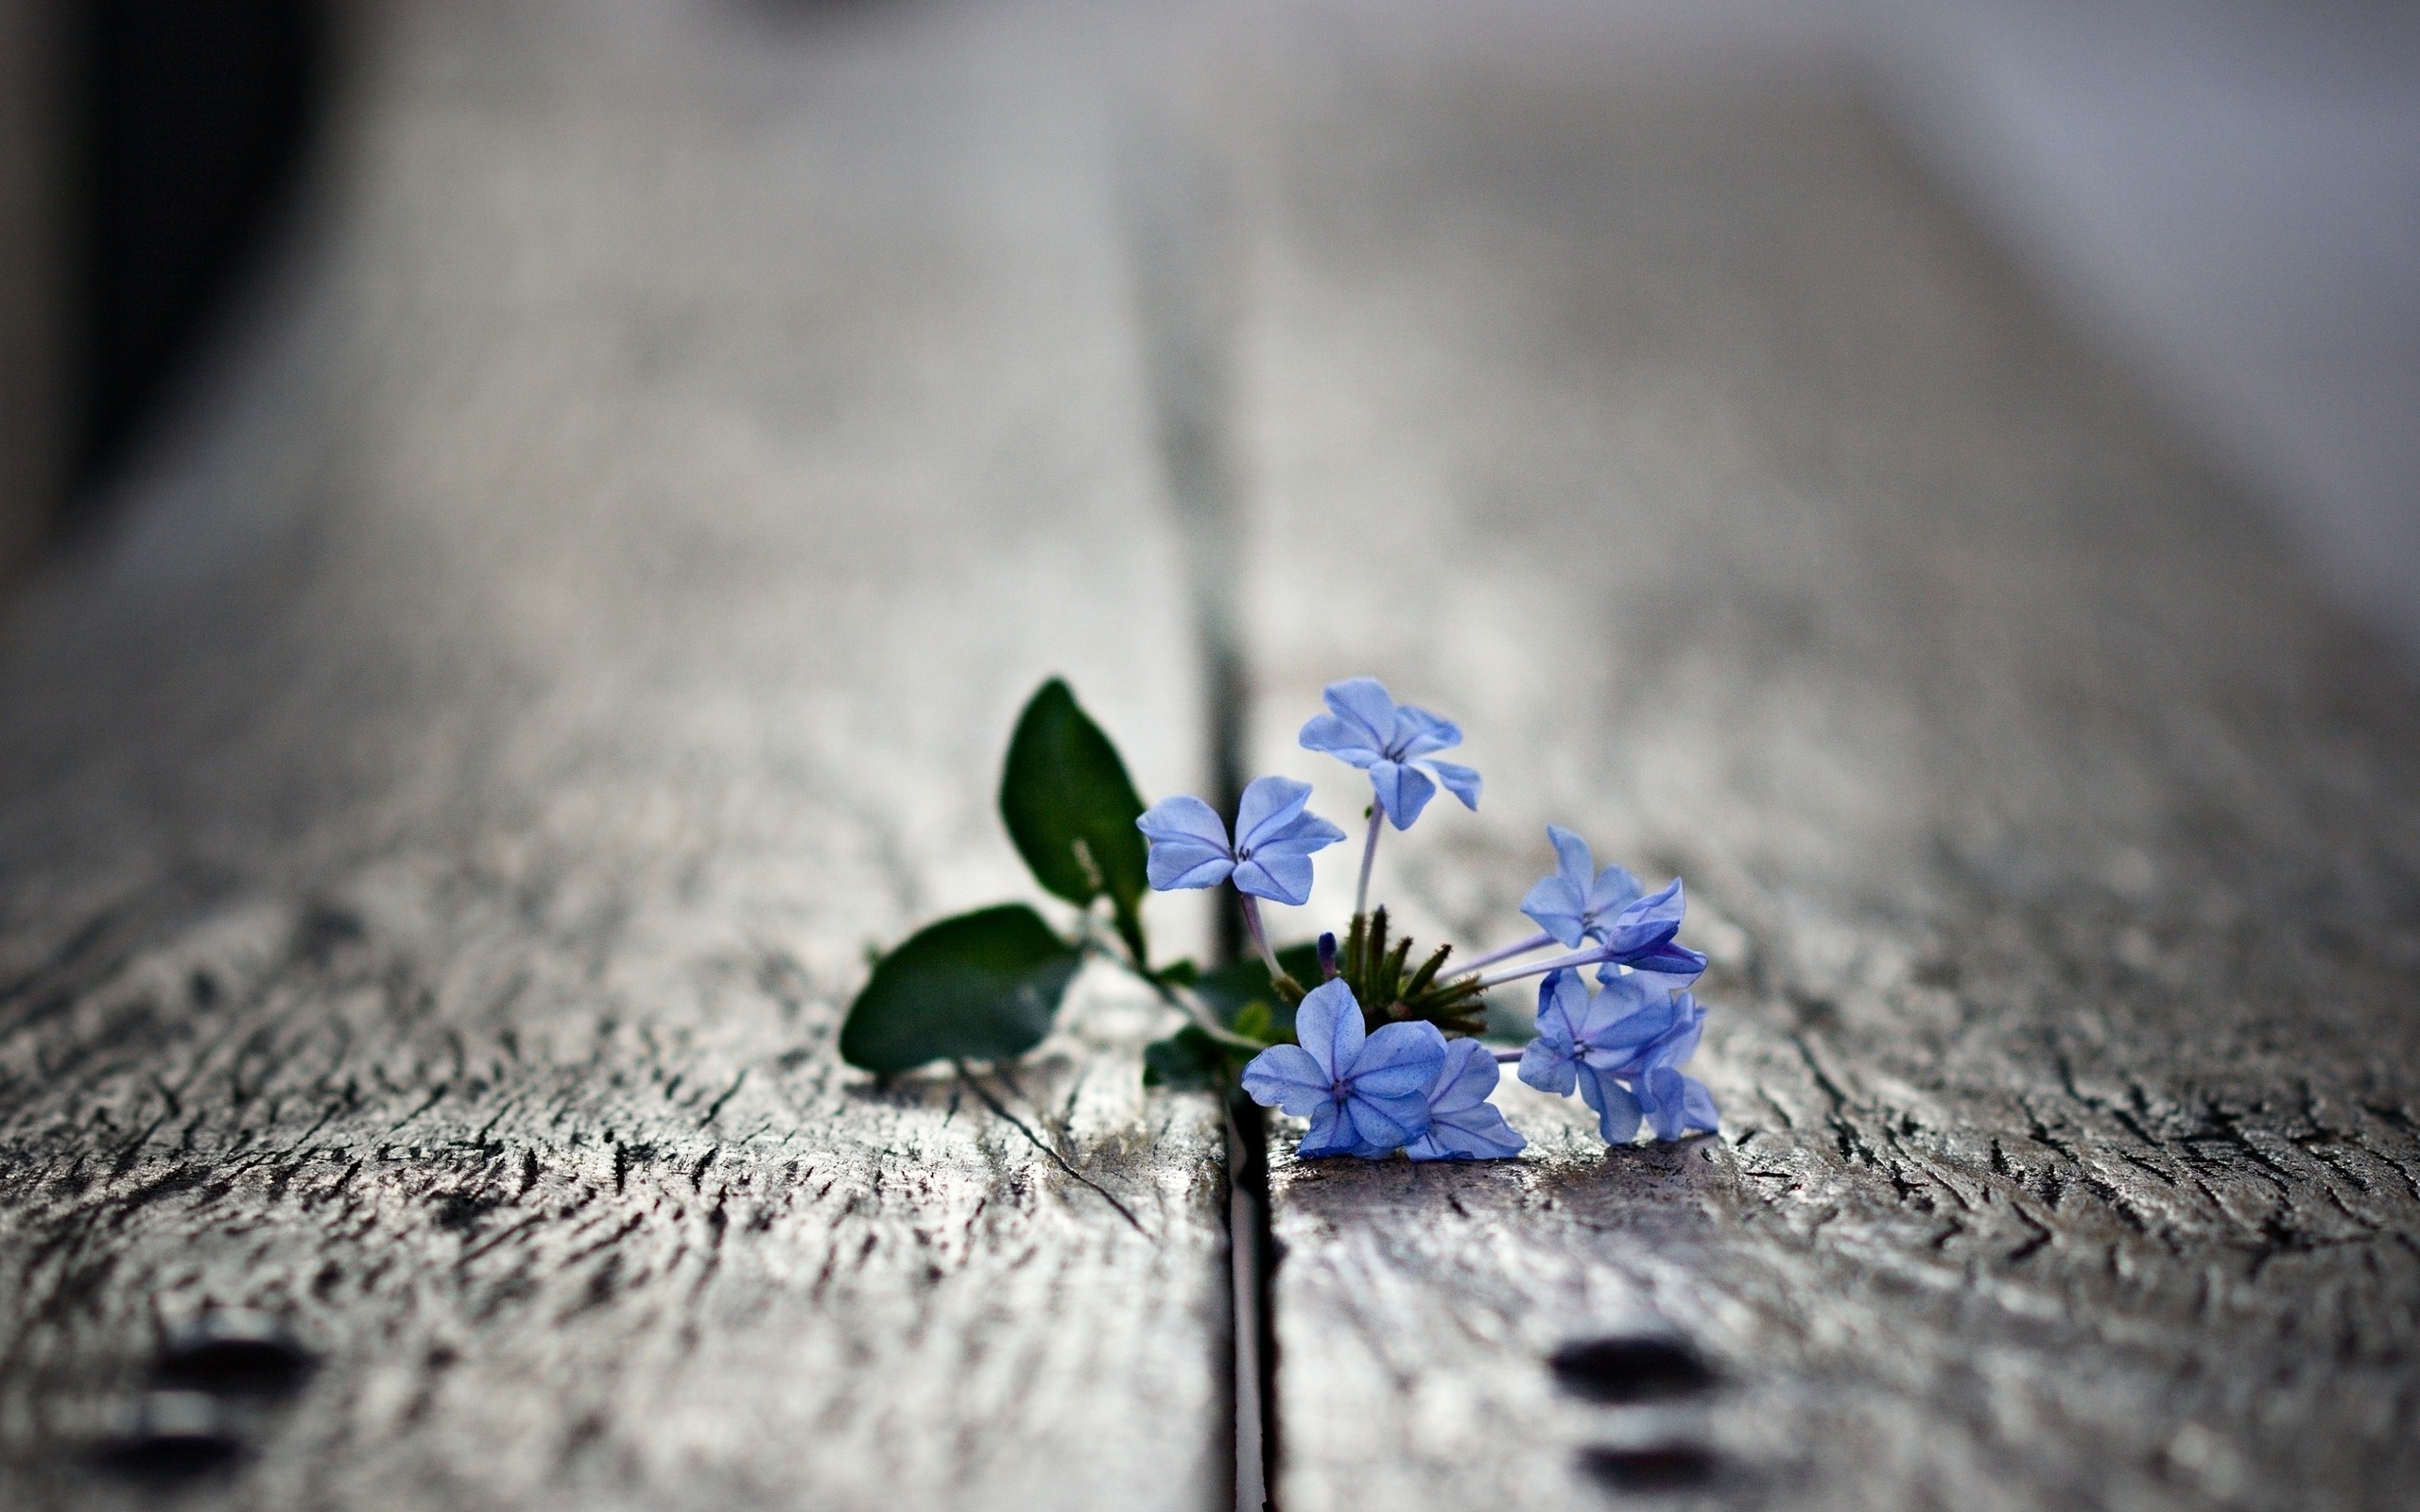 The tiny blue flower sprouting through the cracks in the wooden floor